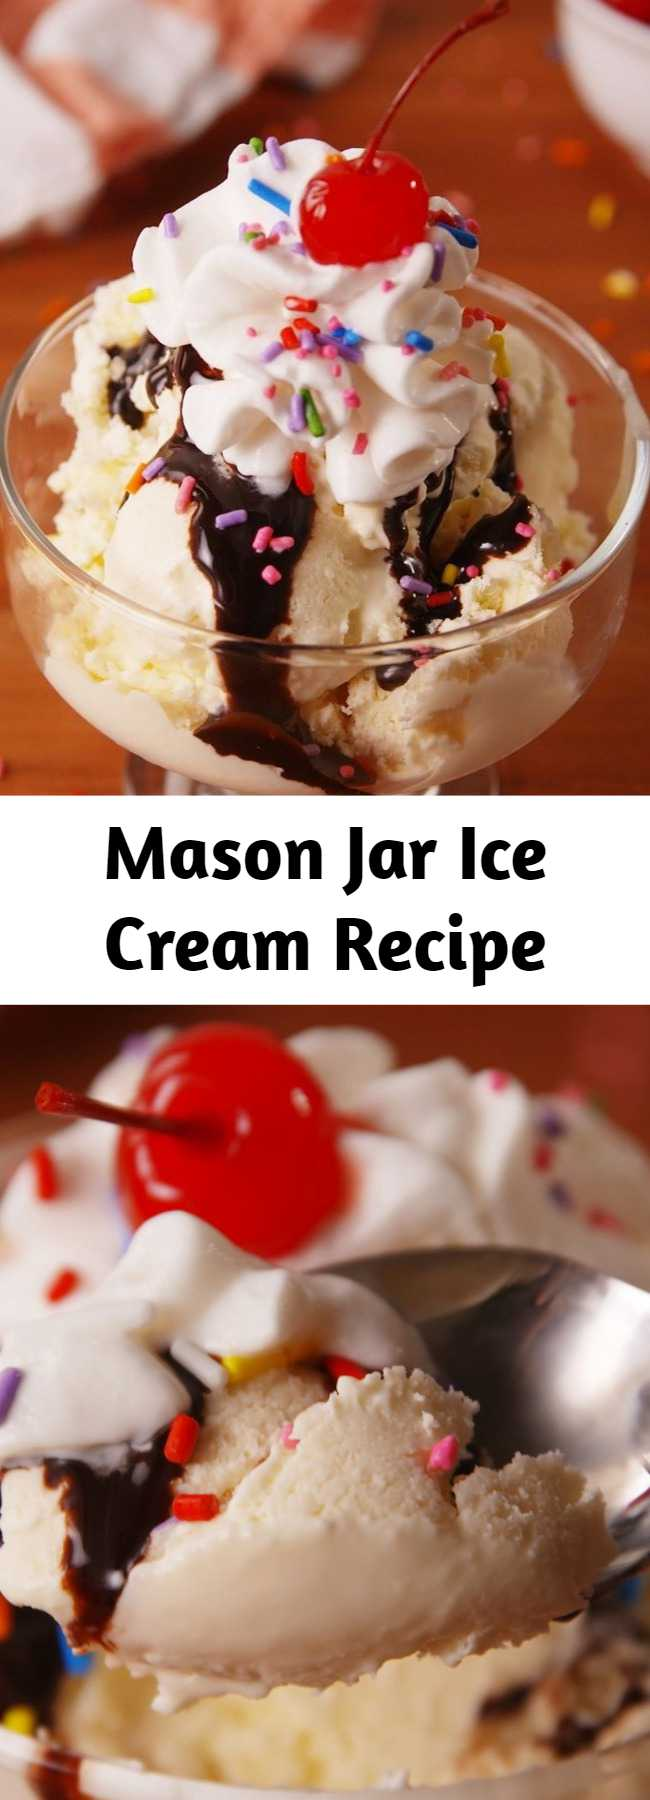 Mason Jar Ice Cream Recipe - Easy to make homemade ice cream with just 4 ingredients. No need to scream for ice cream!